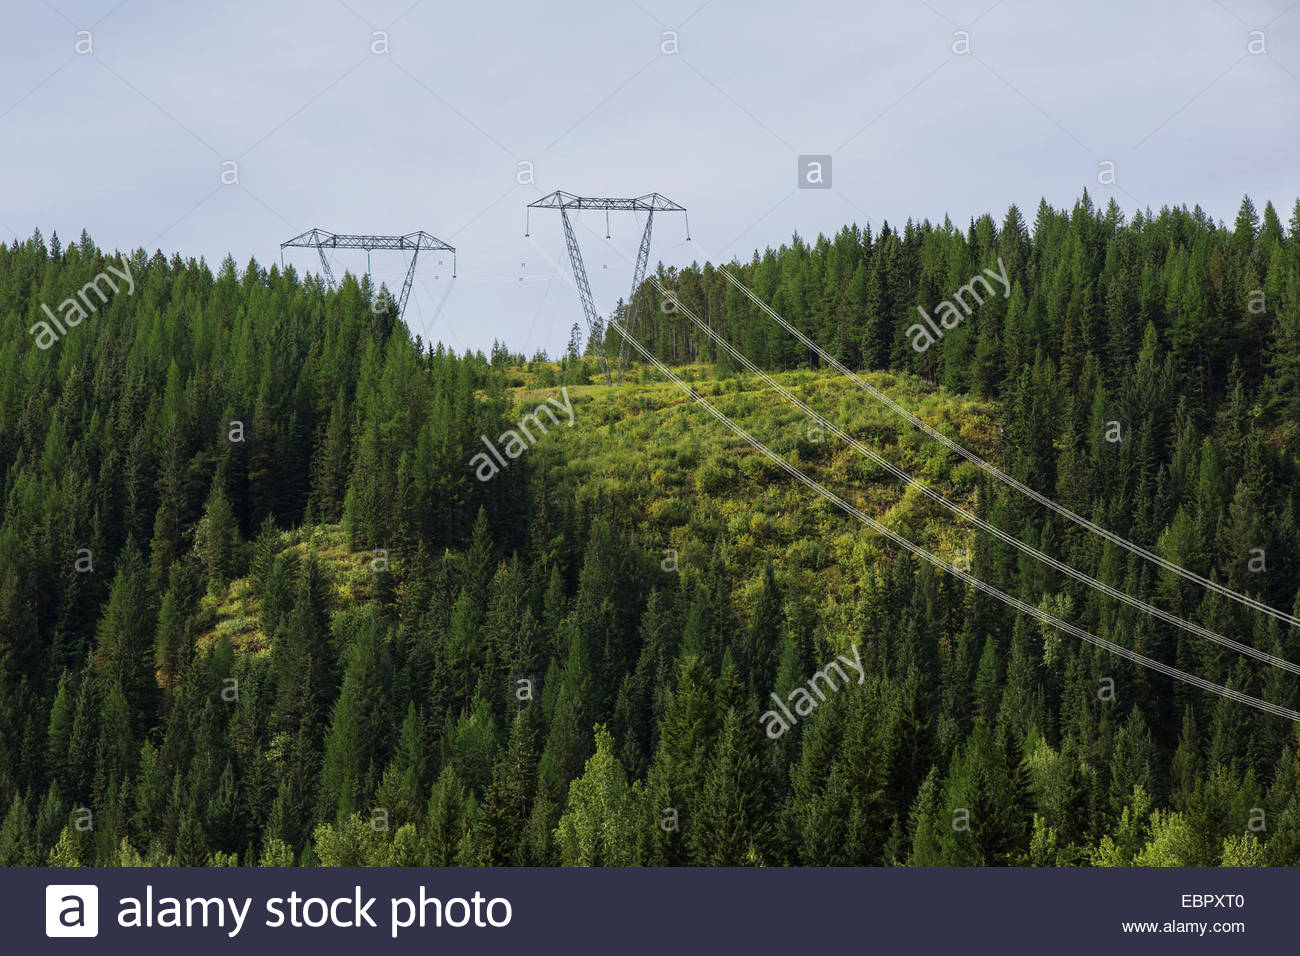 Power lines spanning forest hillside - Stock Image